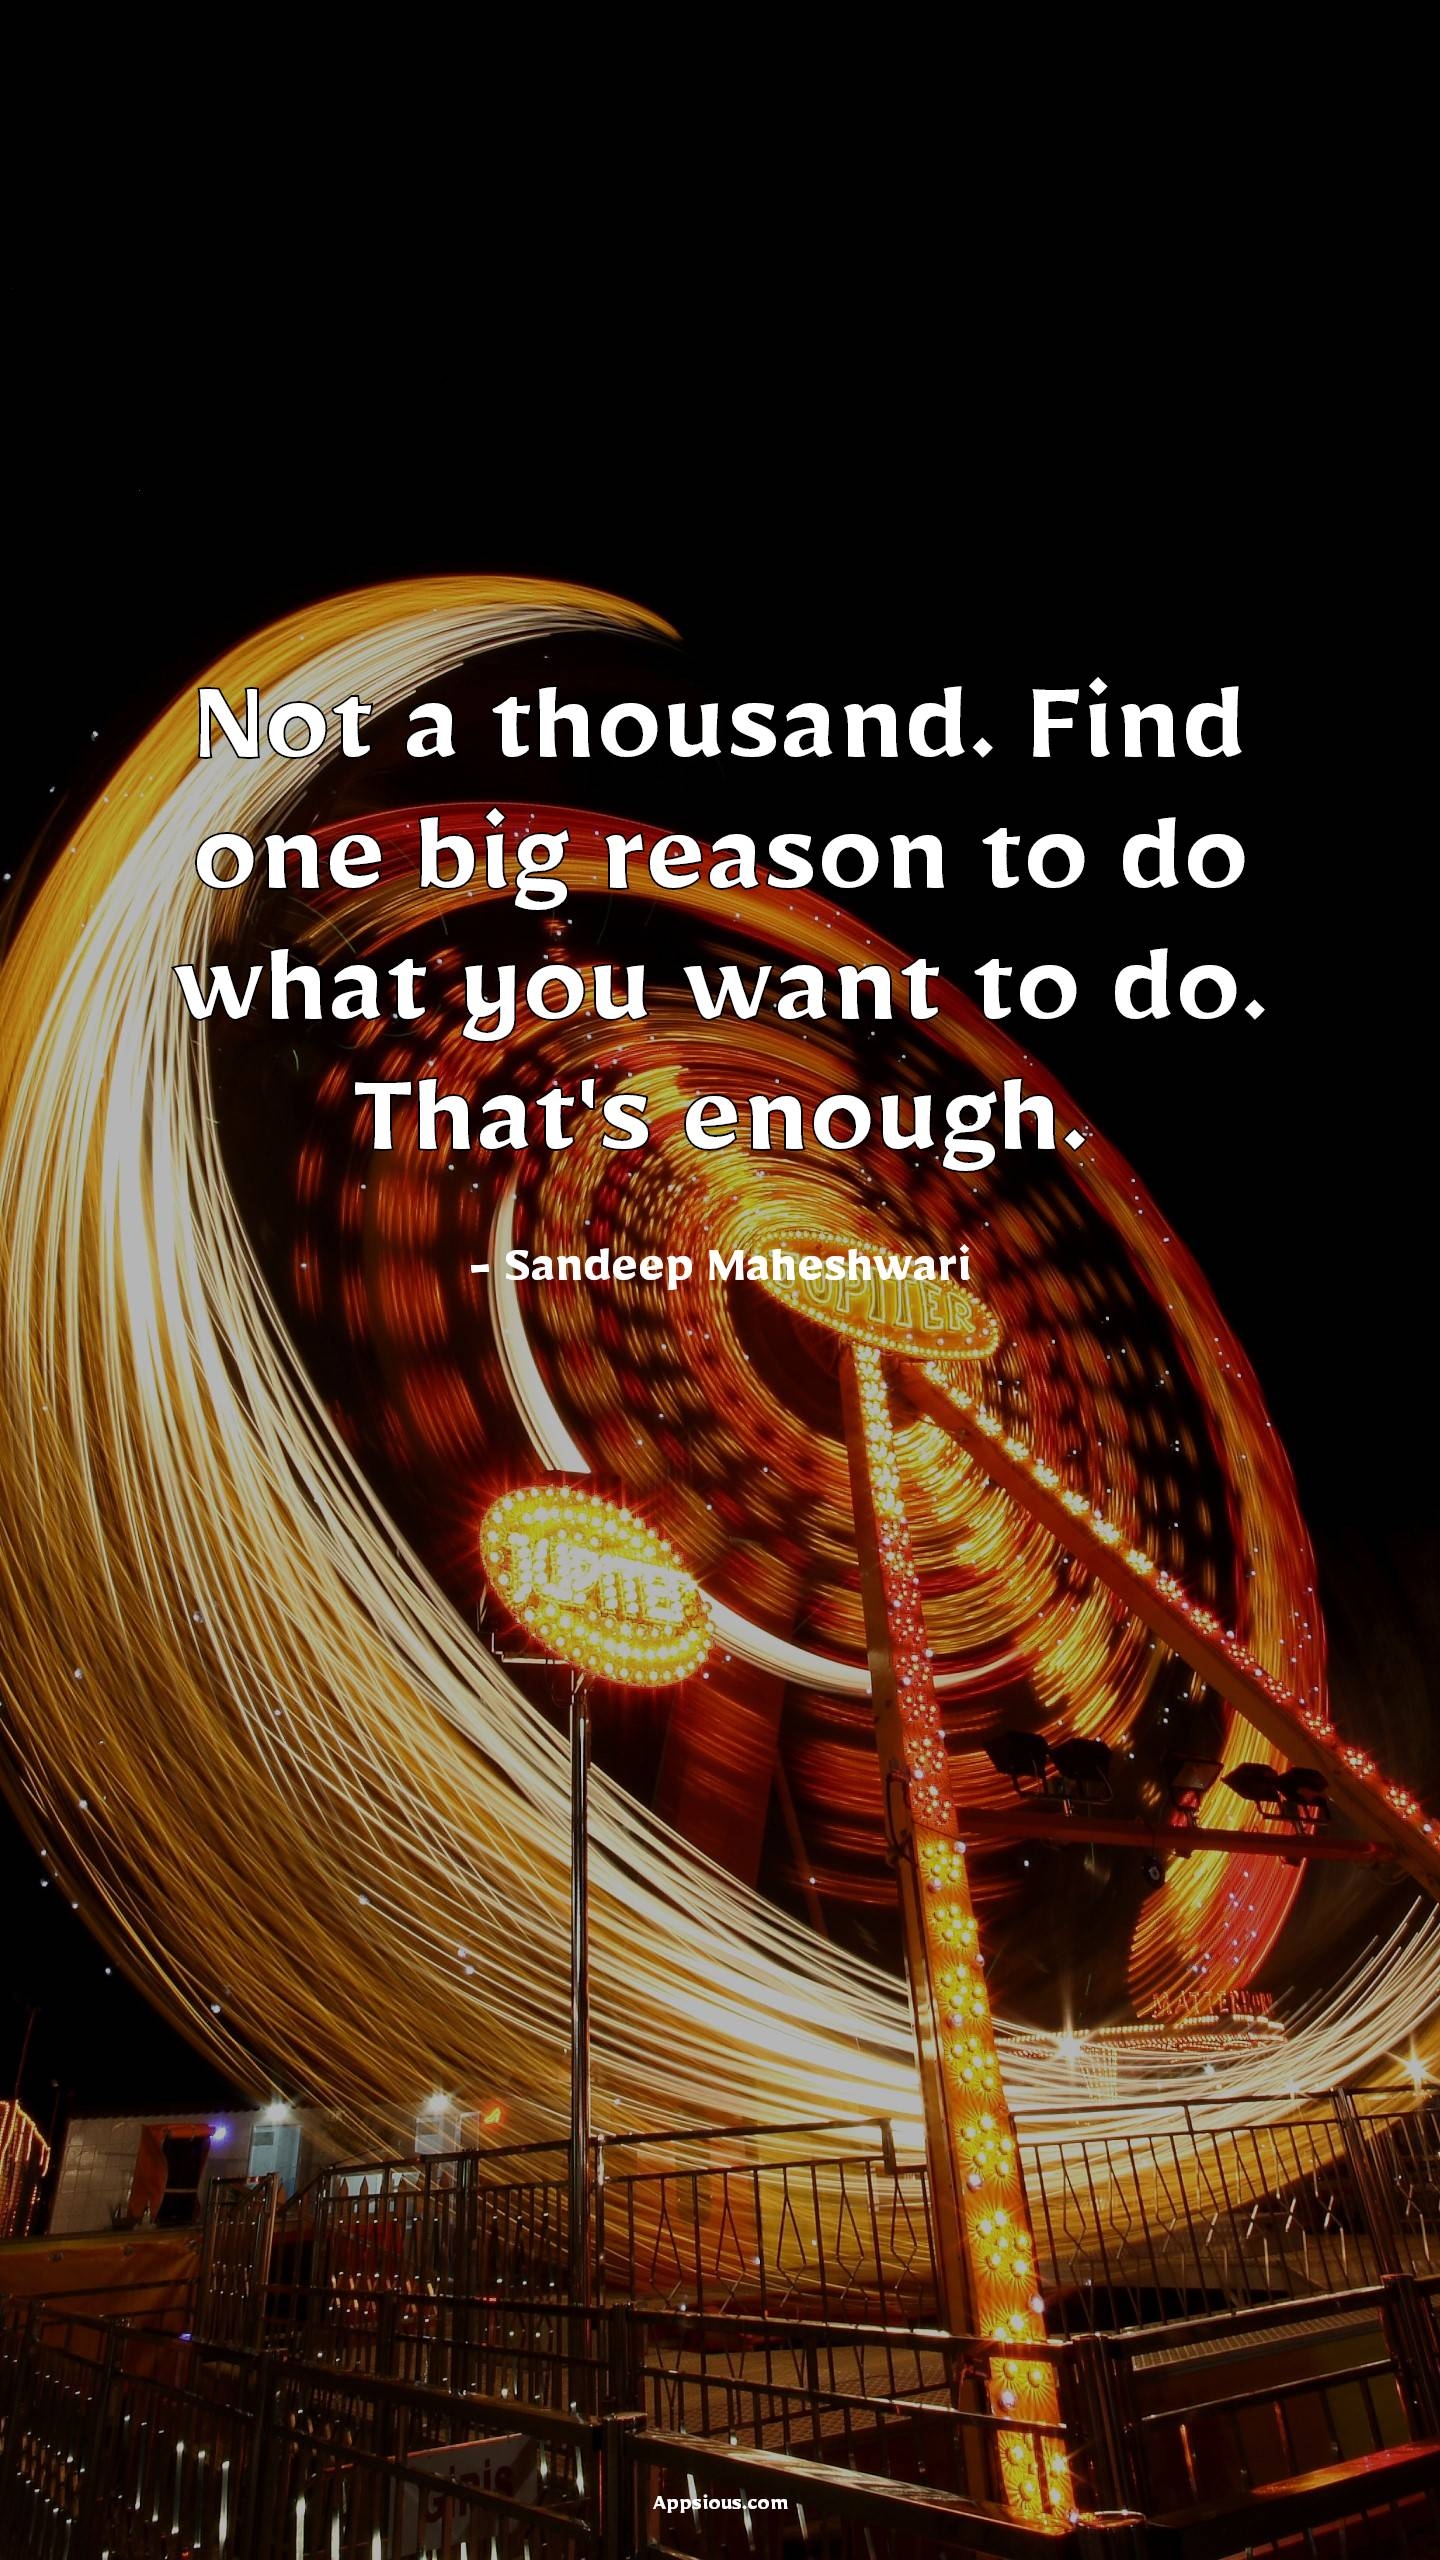 Not a thousand. Find one big reason to do what you want to do. That's enough.